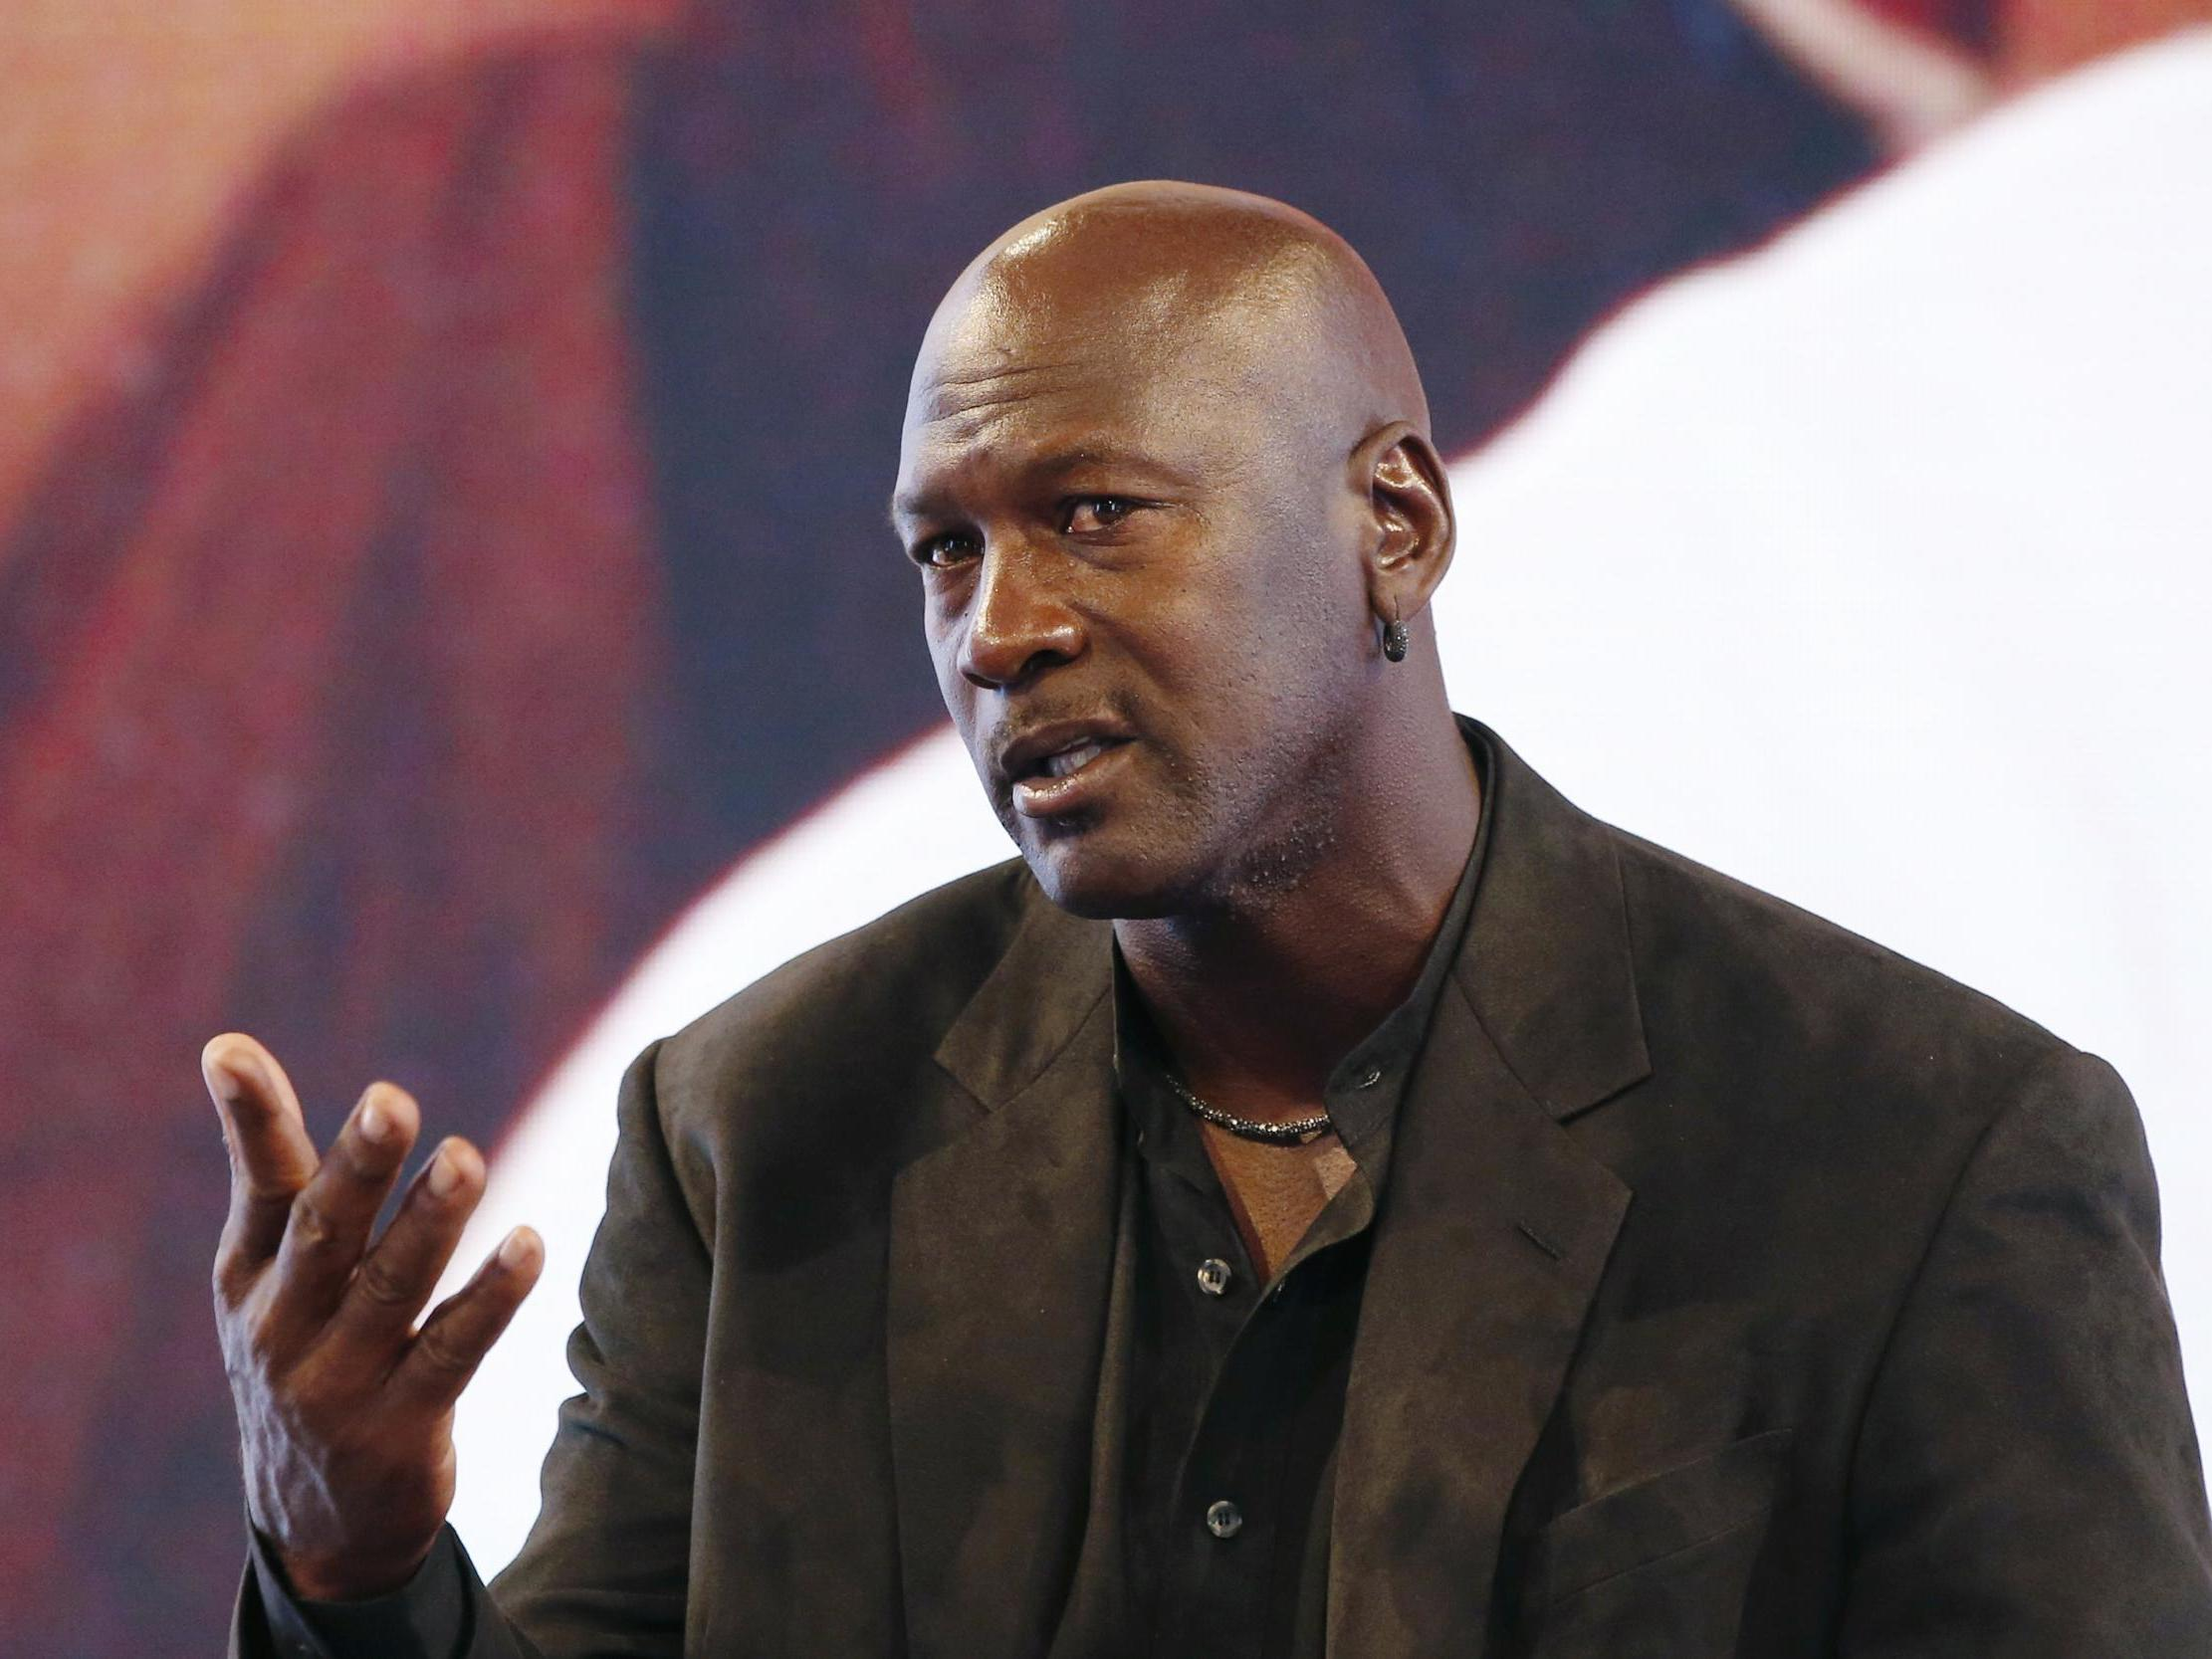 Michael Jordan and his company to donate $100m over next 10 years to support fight for racial equality